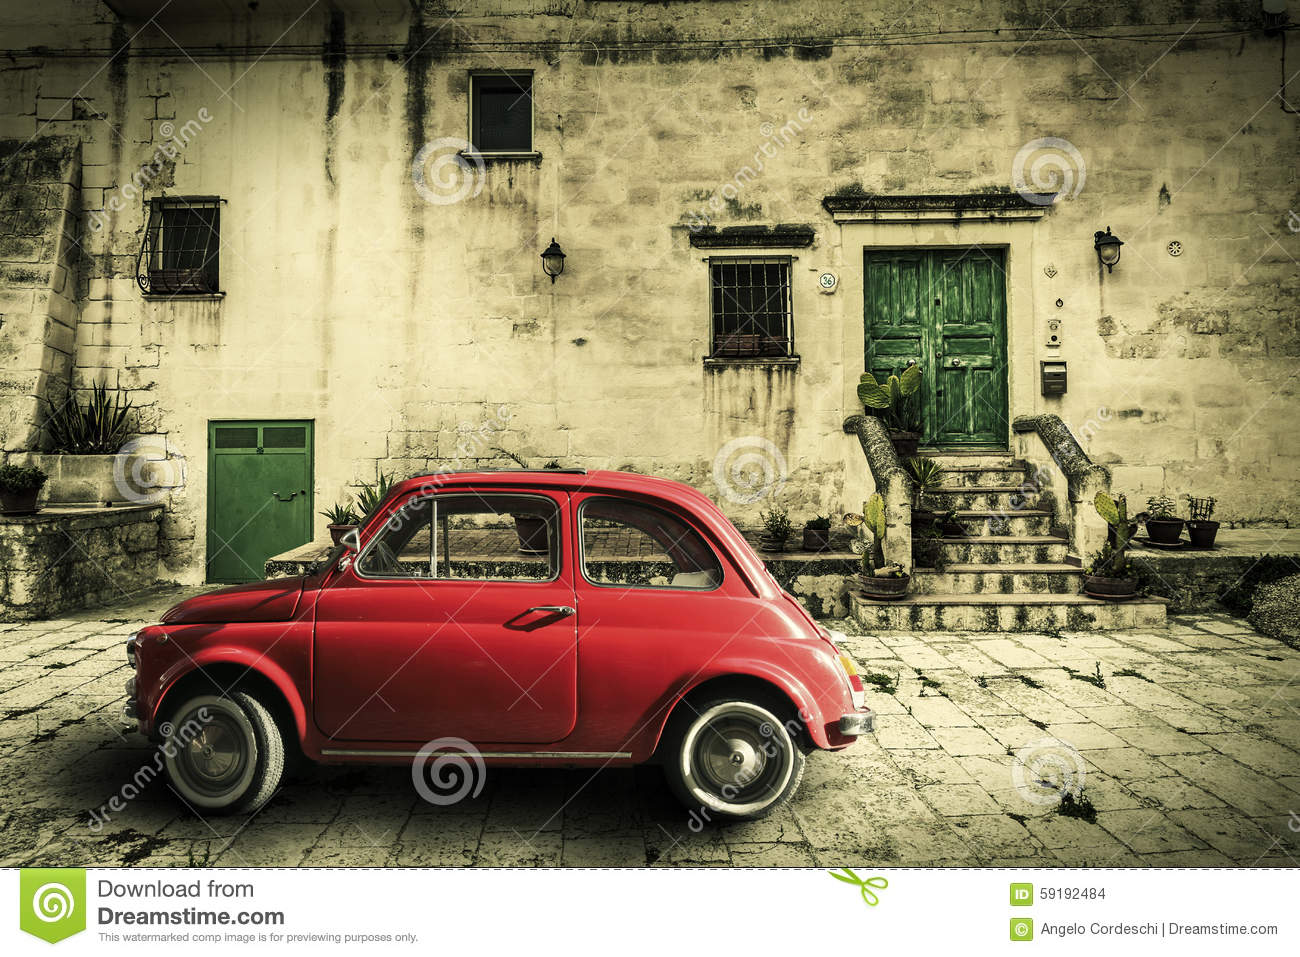 Vintage Fotos Old Vintage Italian Scene. Small Antique Red Car. Aging Effect Stock Photo 59192484 - Megapixl